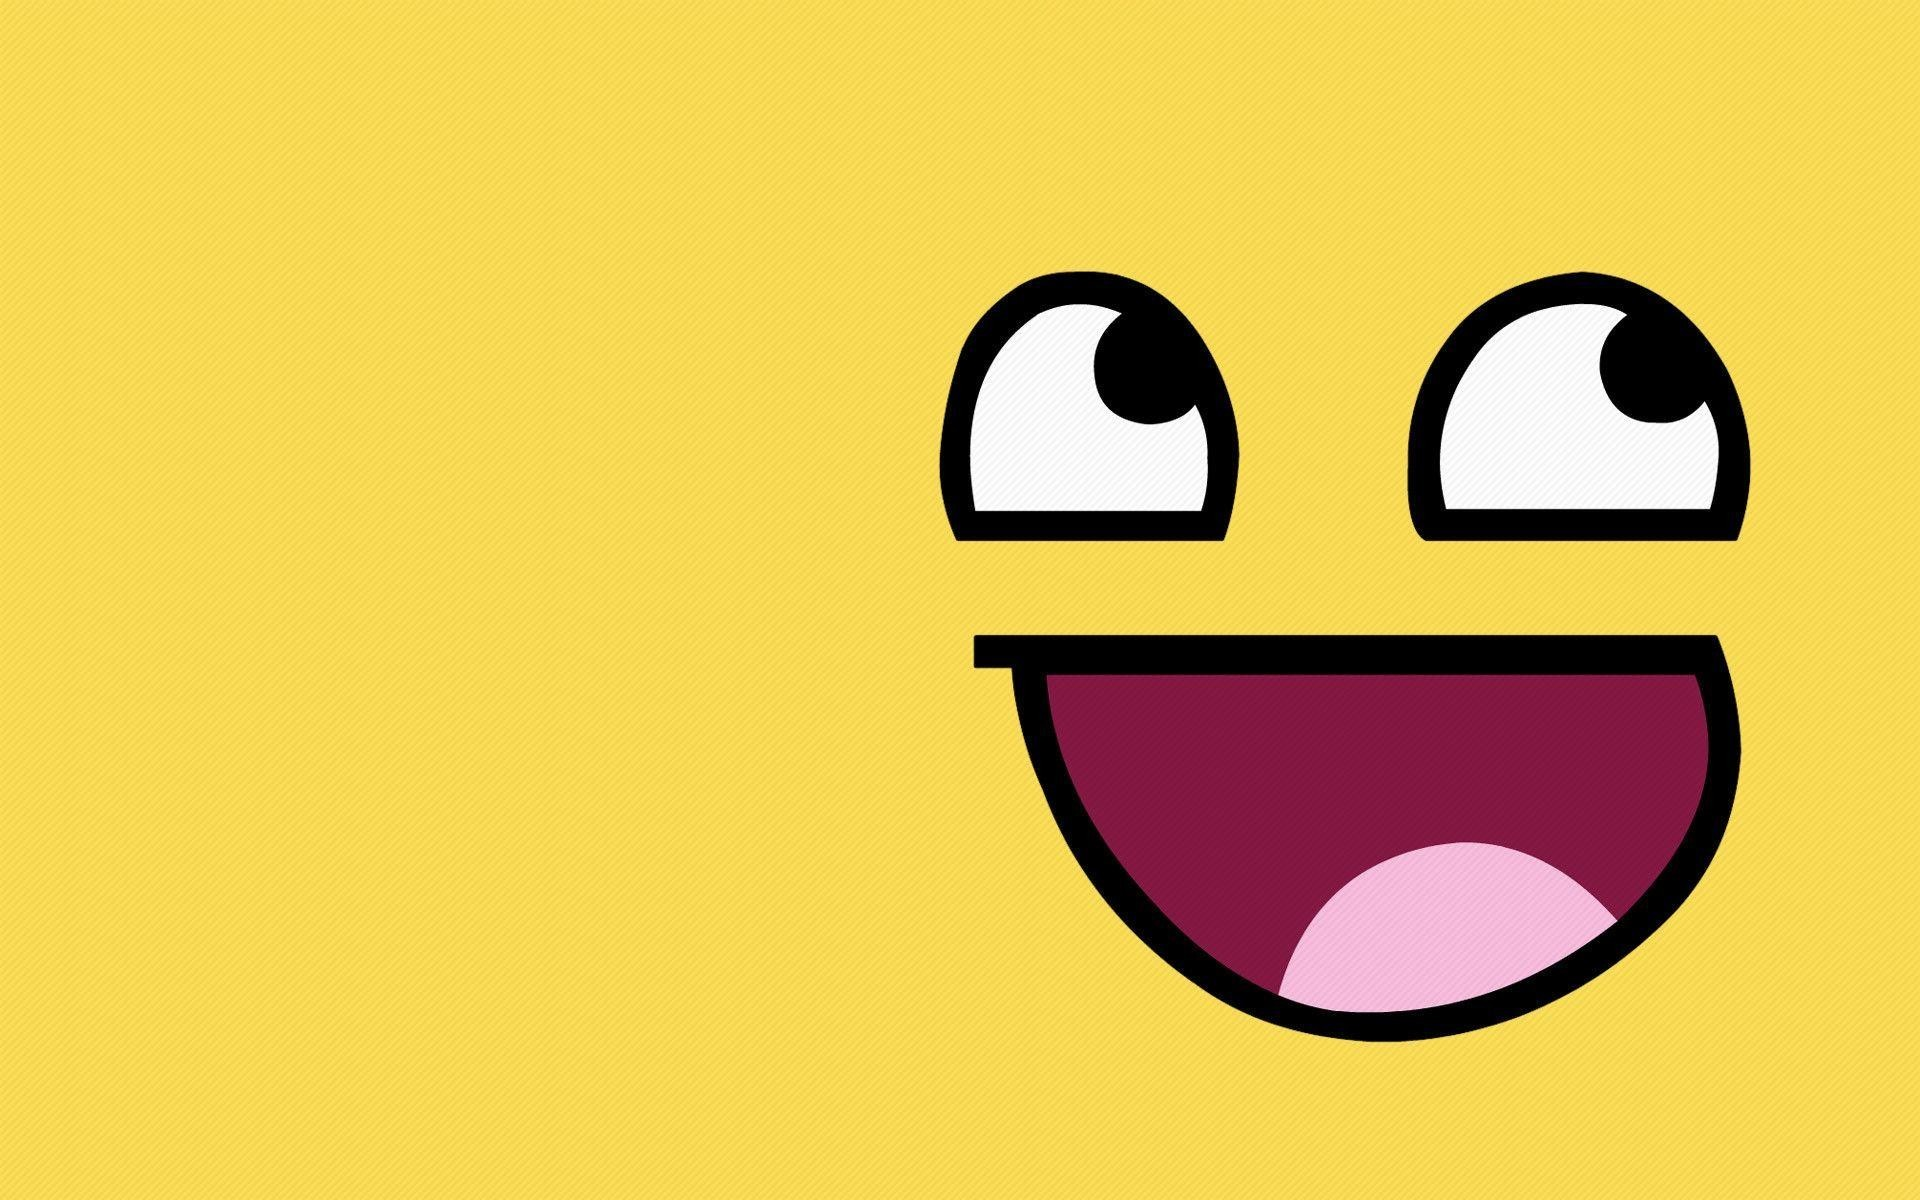 1920x1200  Awesome Smiley Face Wallpaper 19140 Full HD Wallpaper Desktop .